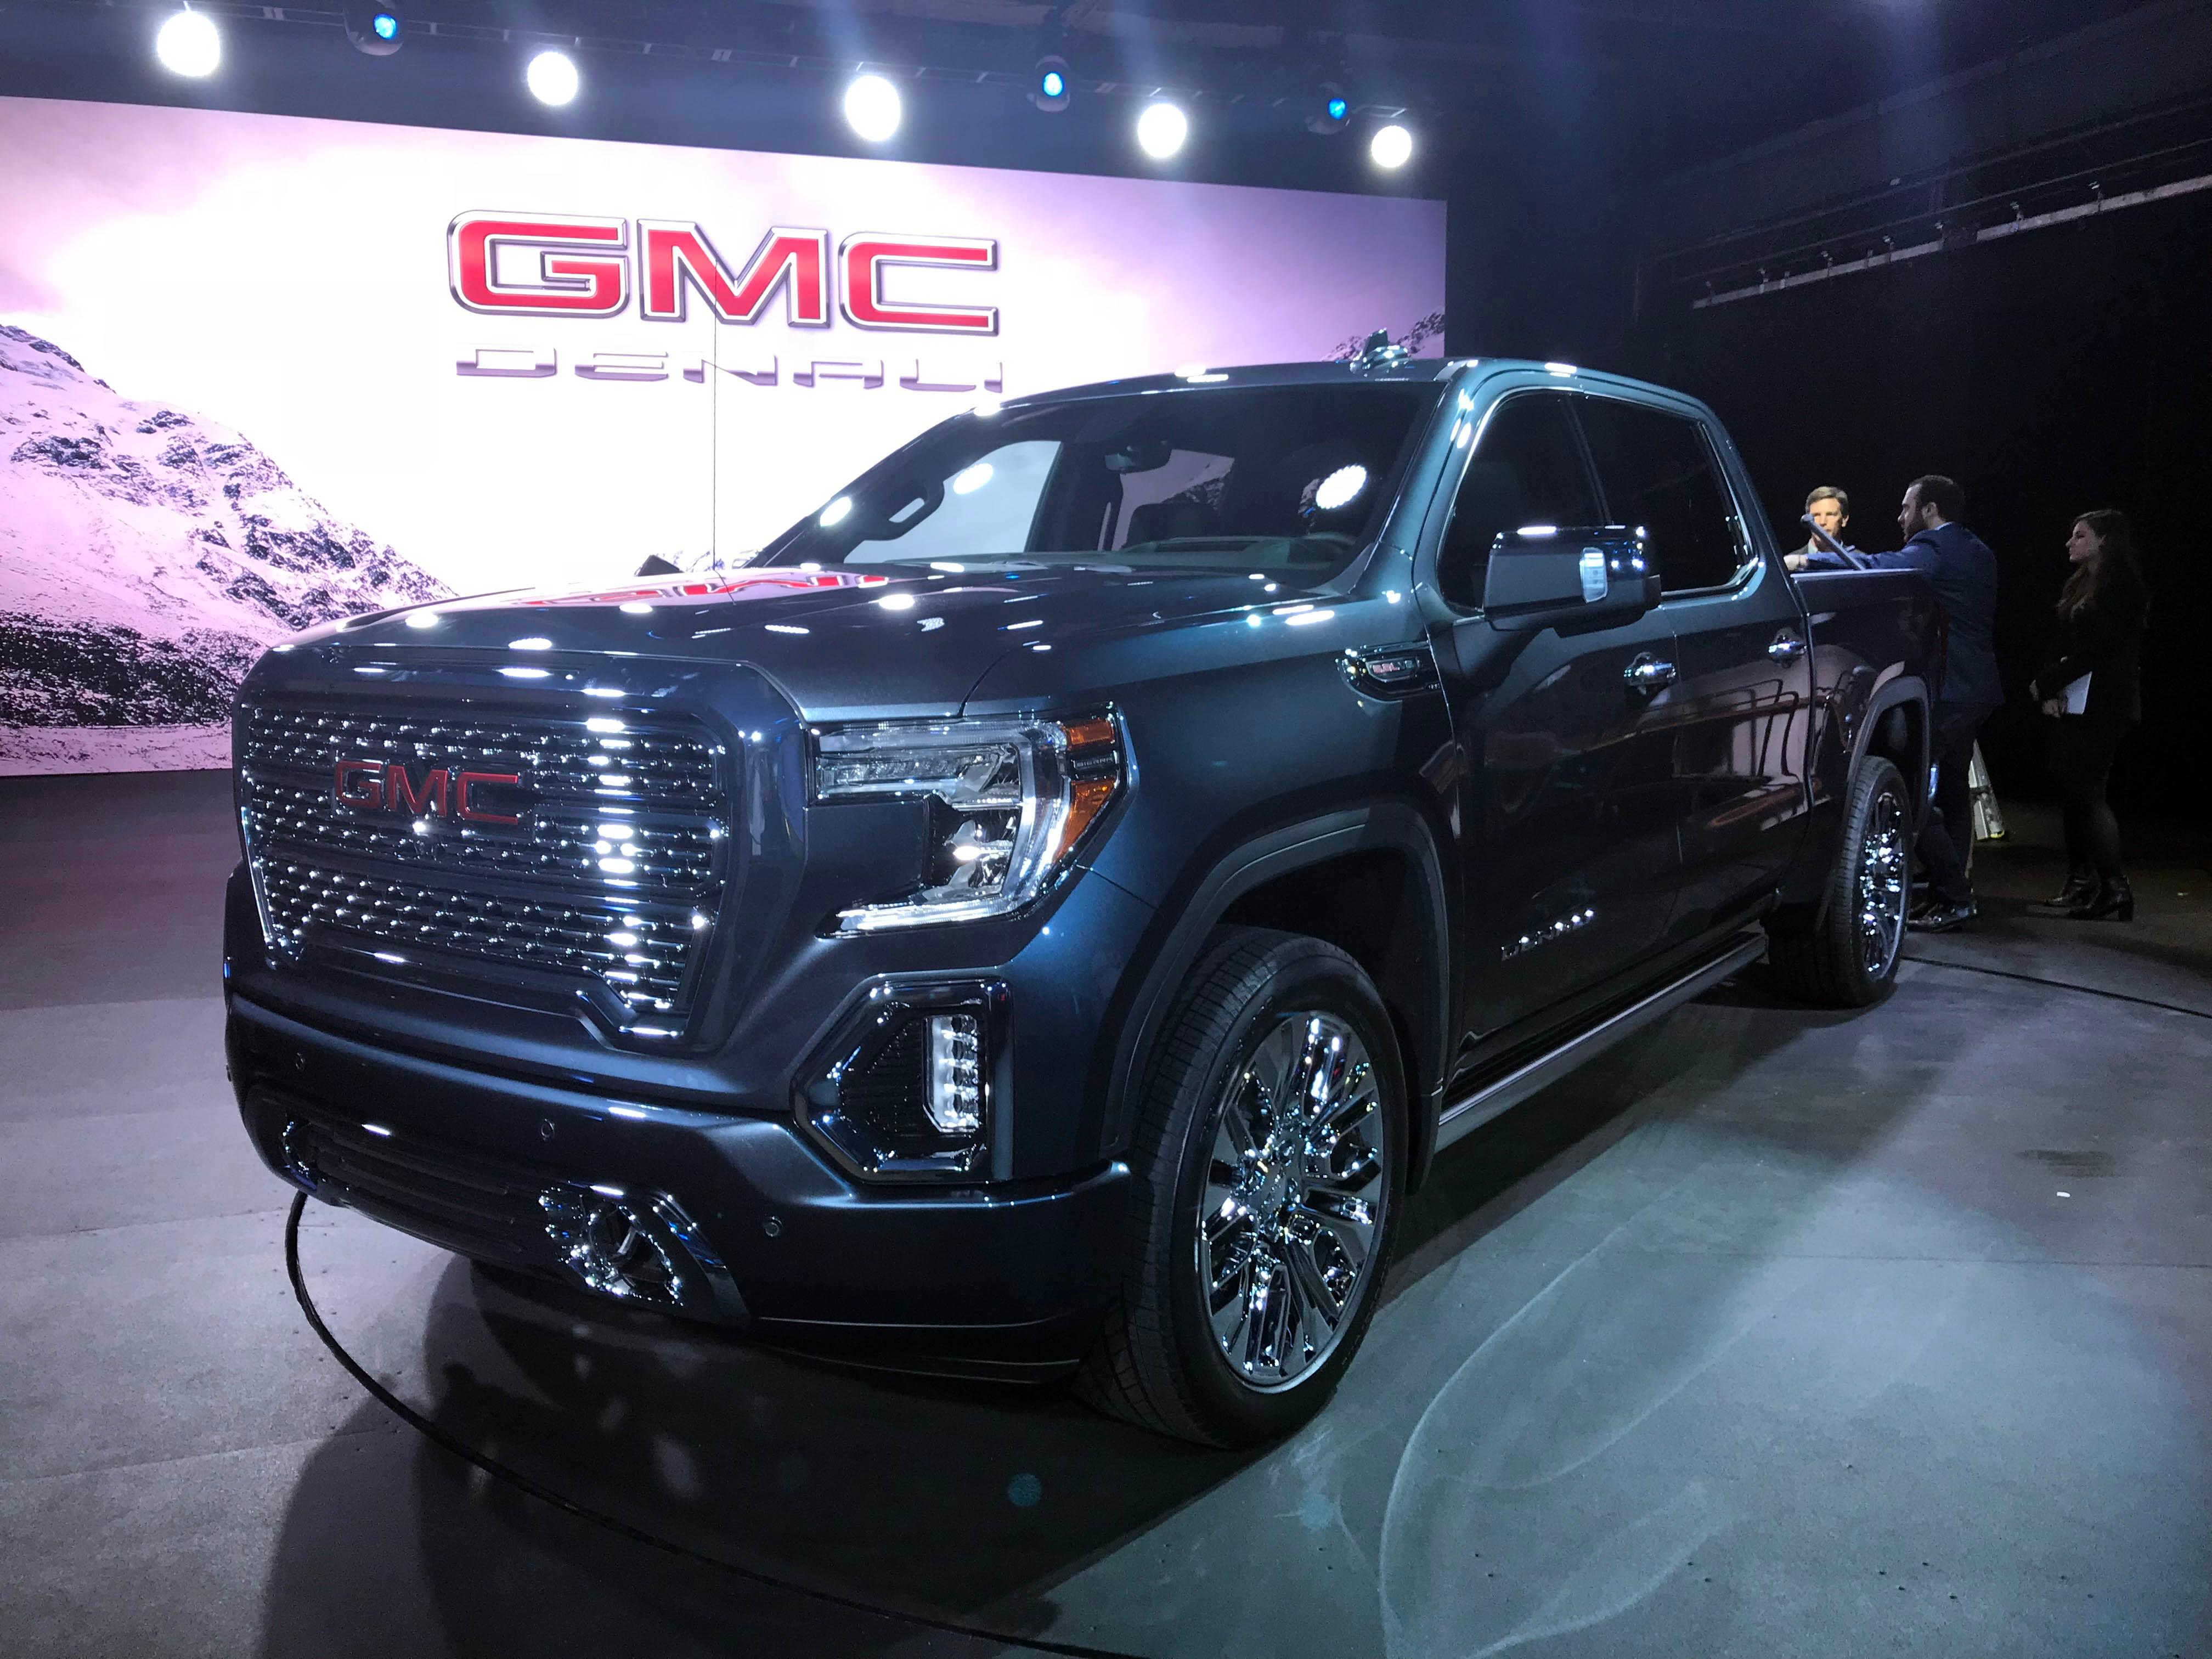 gmc why tampa adaptable buick pickup crown lineup powerful are these fl on jewels some vehicles truck trucks versatile most sierra buy canyon and of the rivard